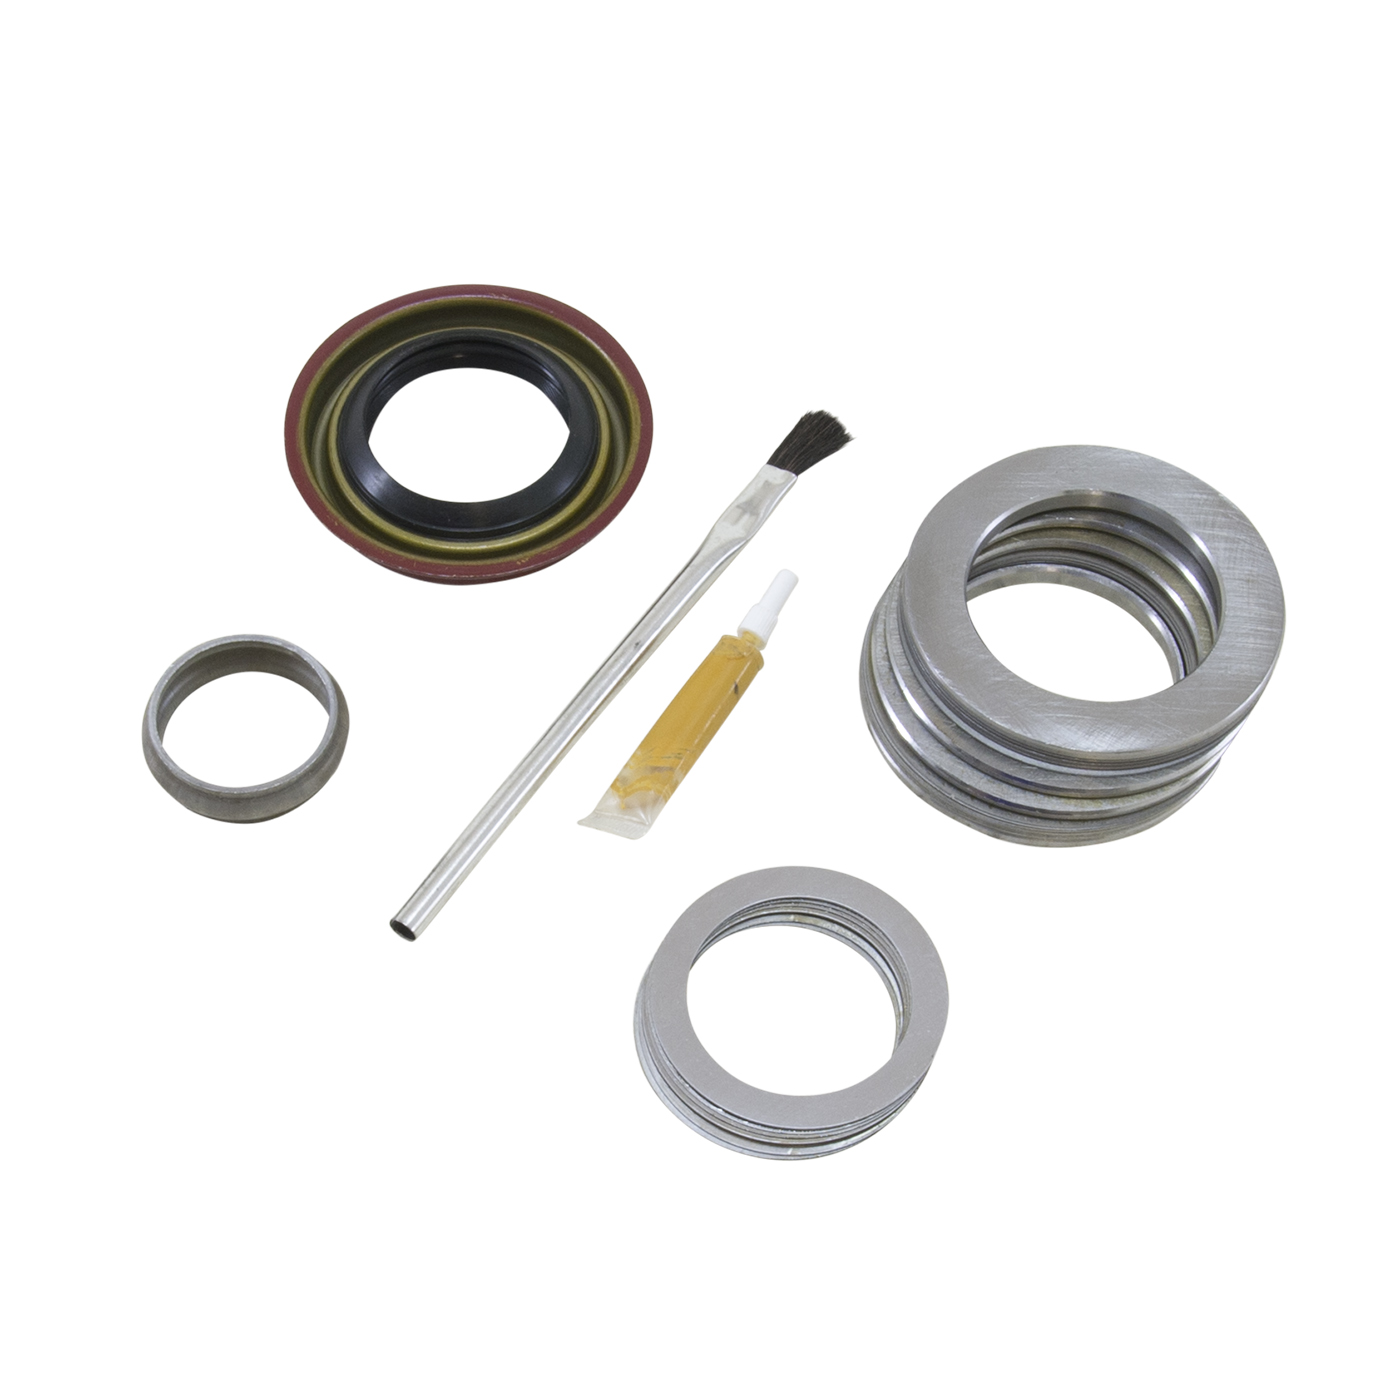 MK F9-HIPIN-D - Yukon Minor install kit for Ford 8.8